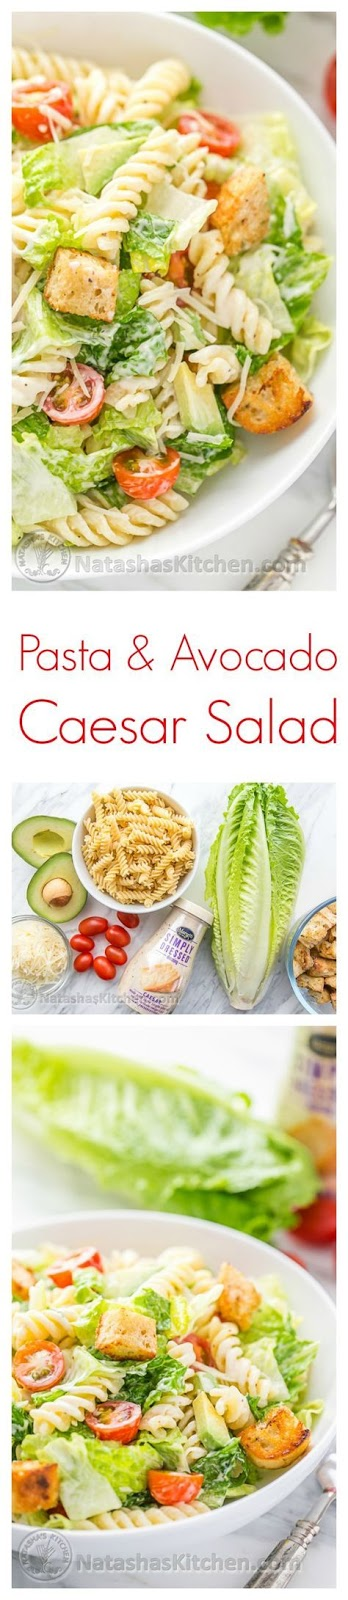 Pasta And Avocado Caesar Salad